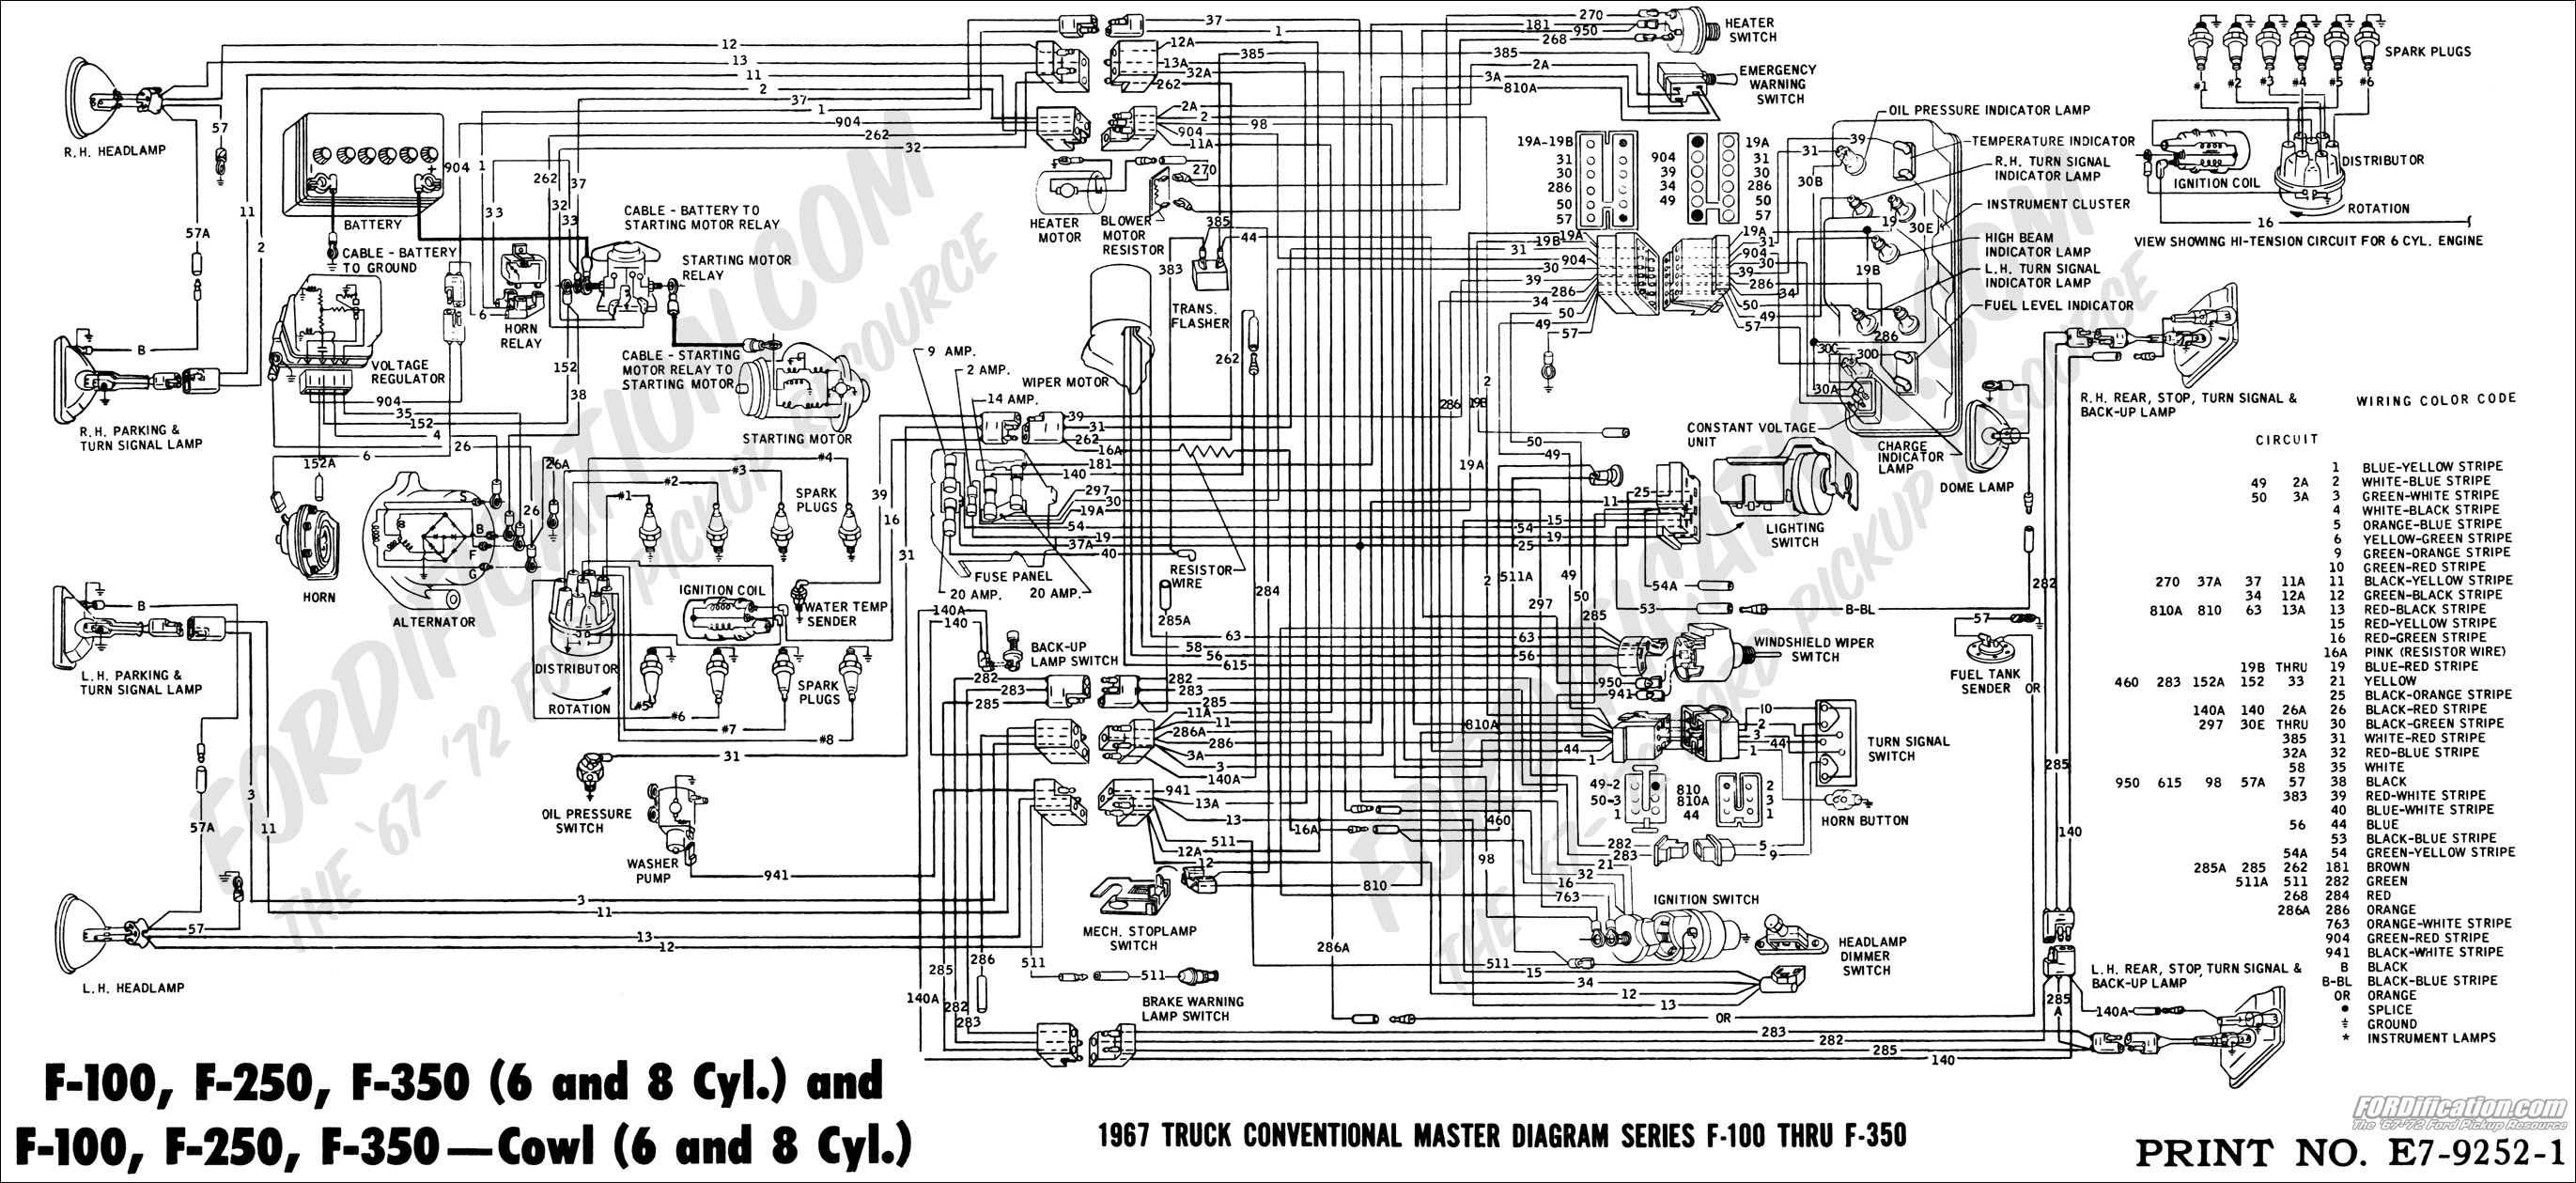 1967 F 100 Steering Column Wiring Diagram | Wiring Diagram  Ford Truck Wiring Diagram on 1939 ford wiring diagram, 63 chevy wiring diagram, 49 ford wiring diagram,